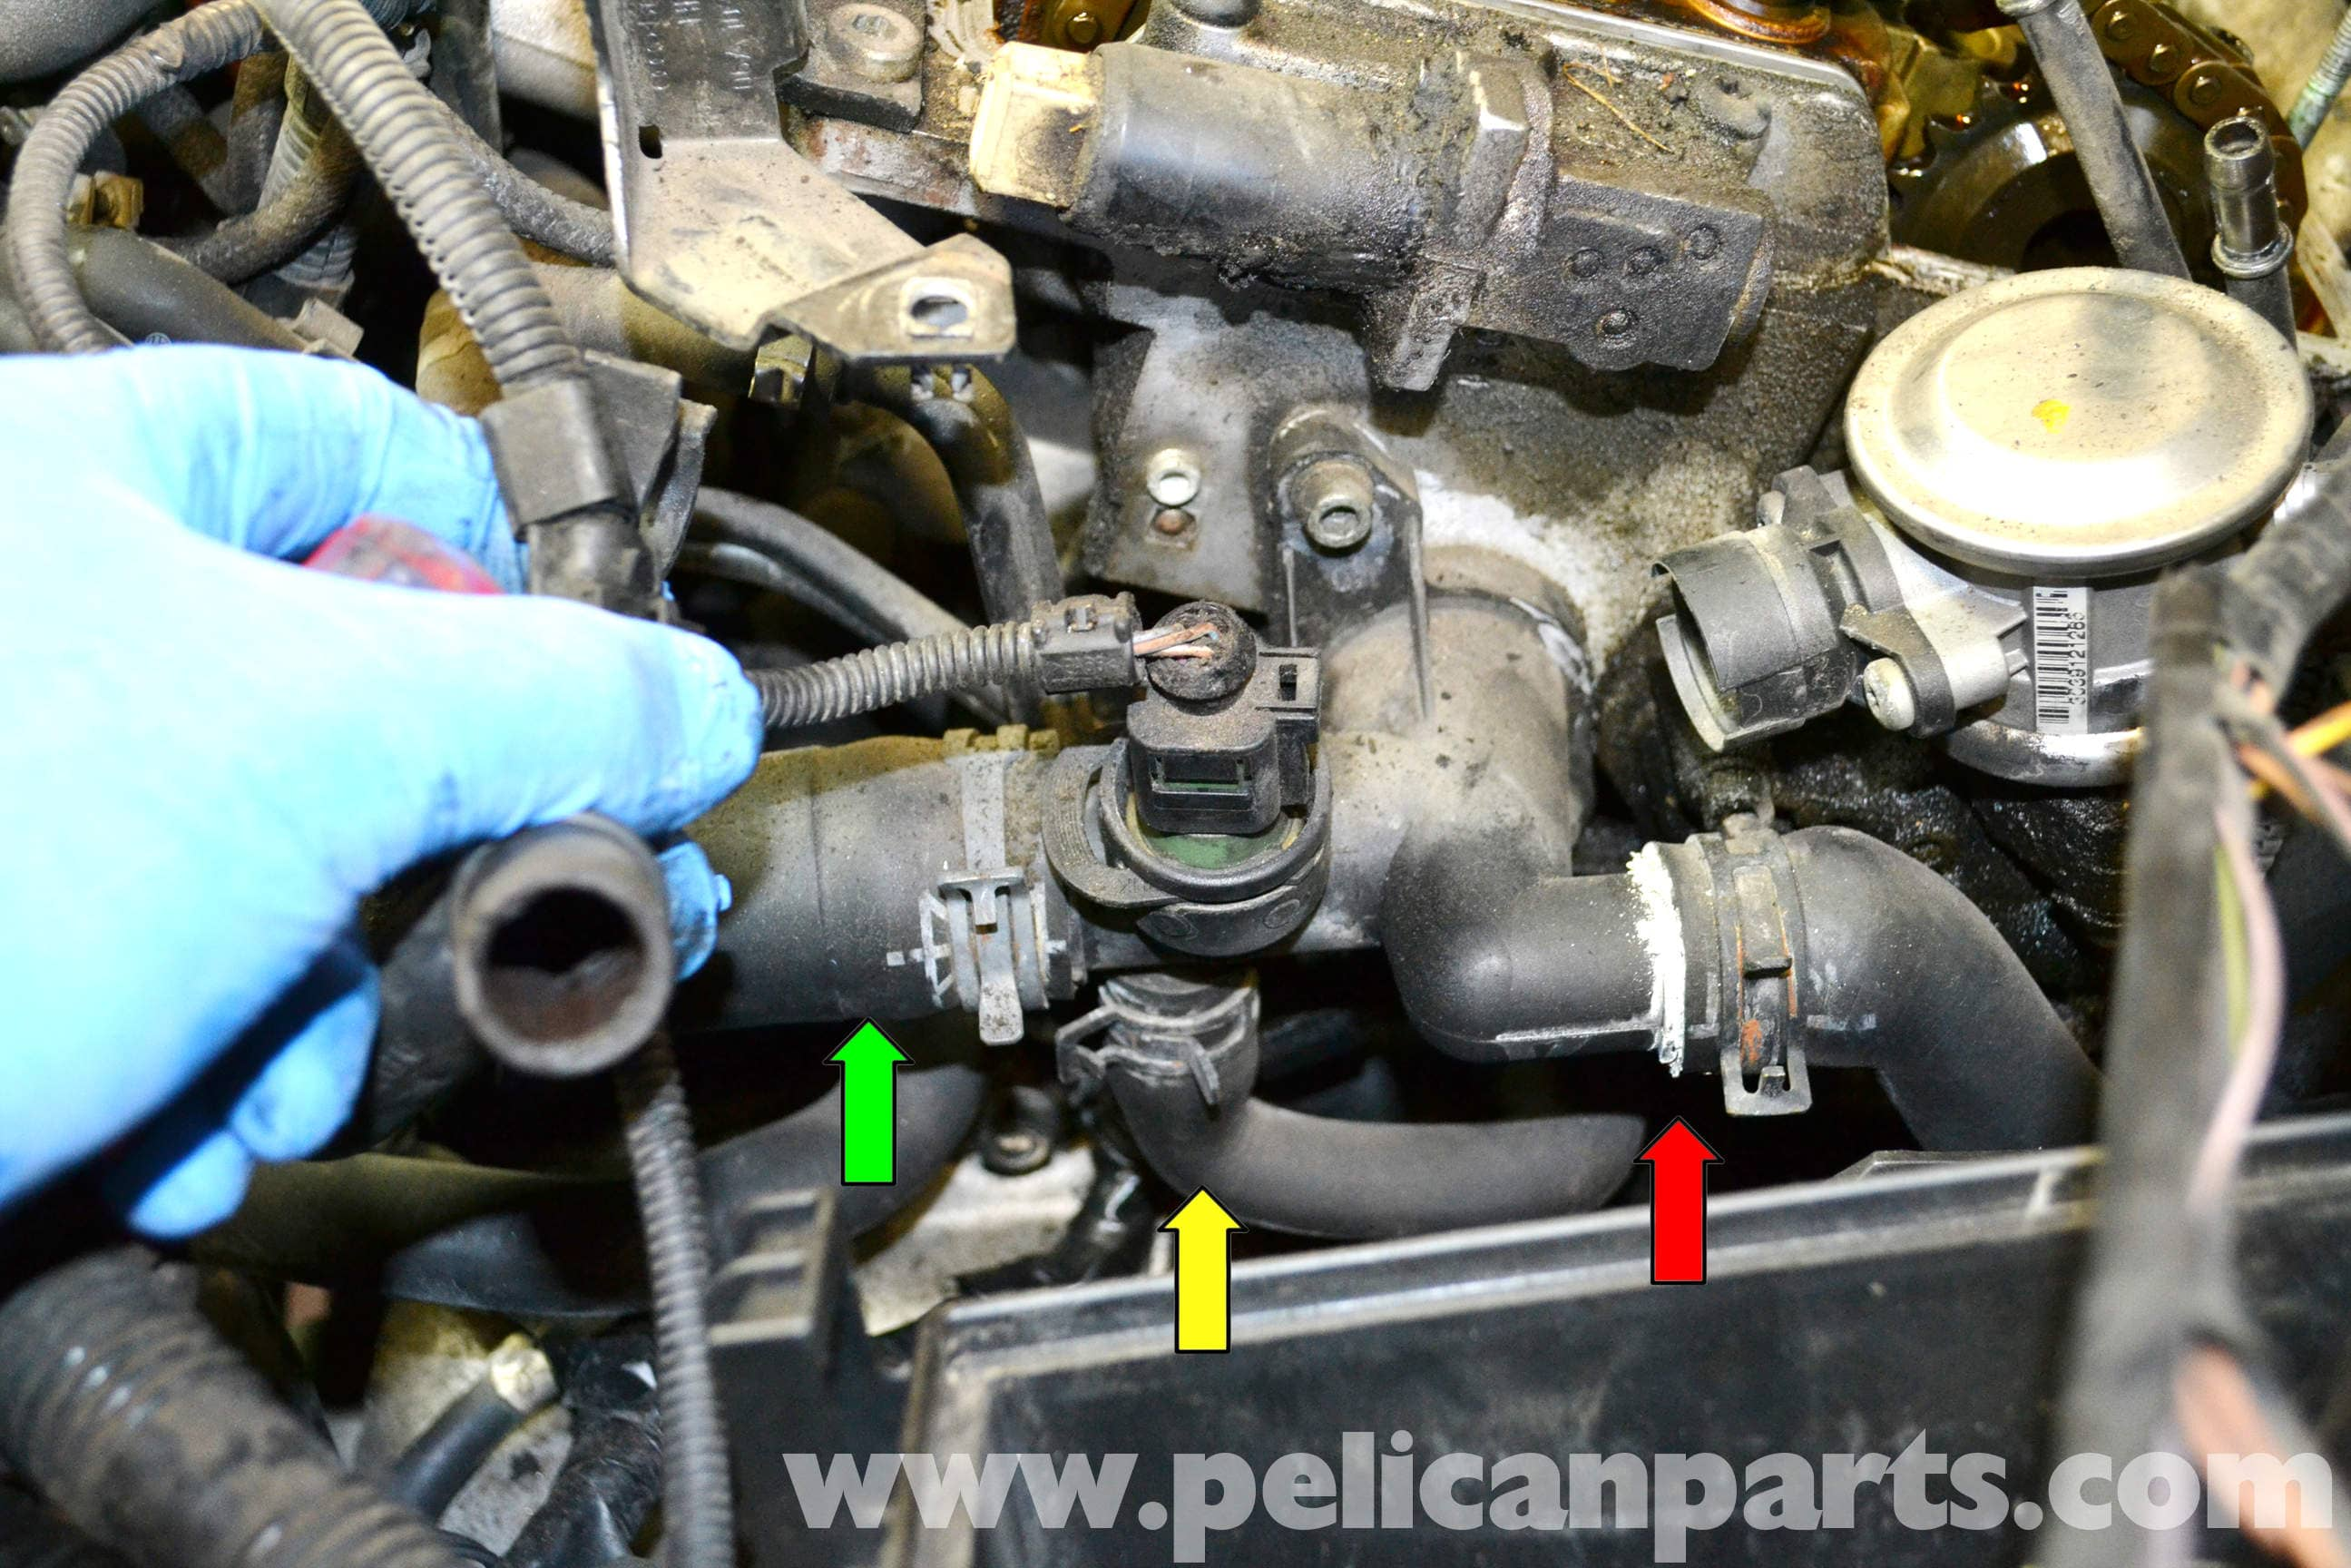 Volkswagen Golf GTI Mk IV Radiator Hose Replacet (1999-2005 ...